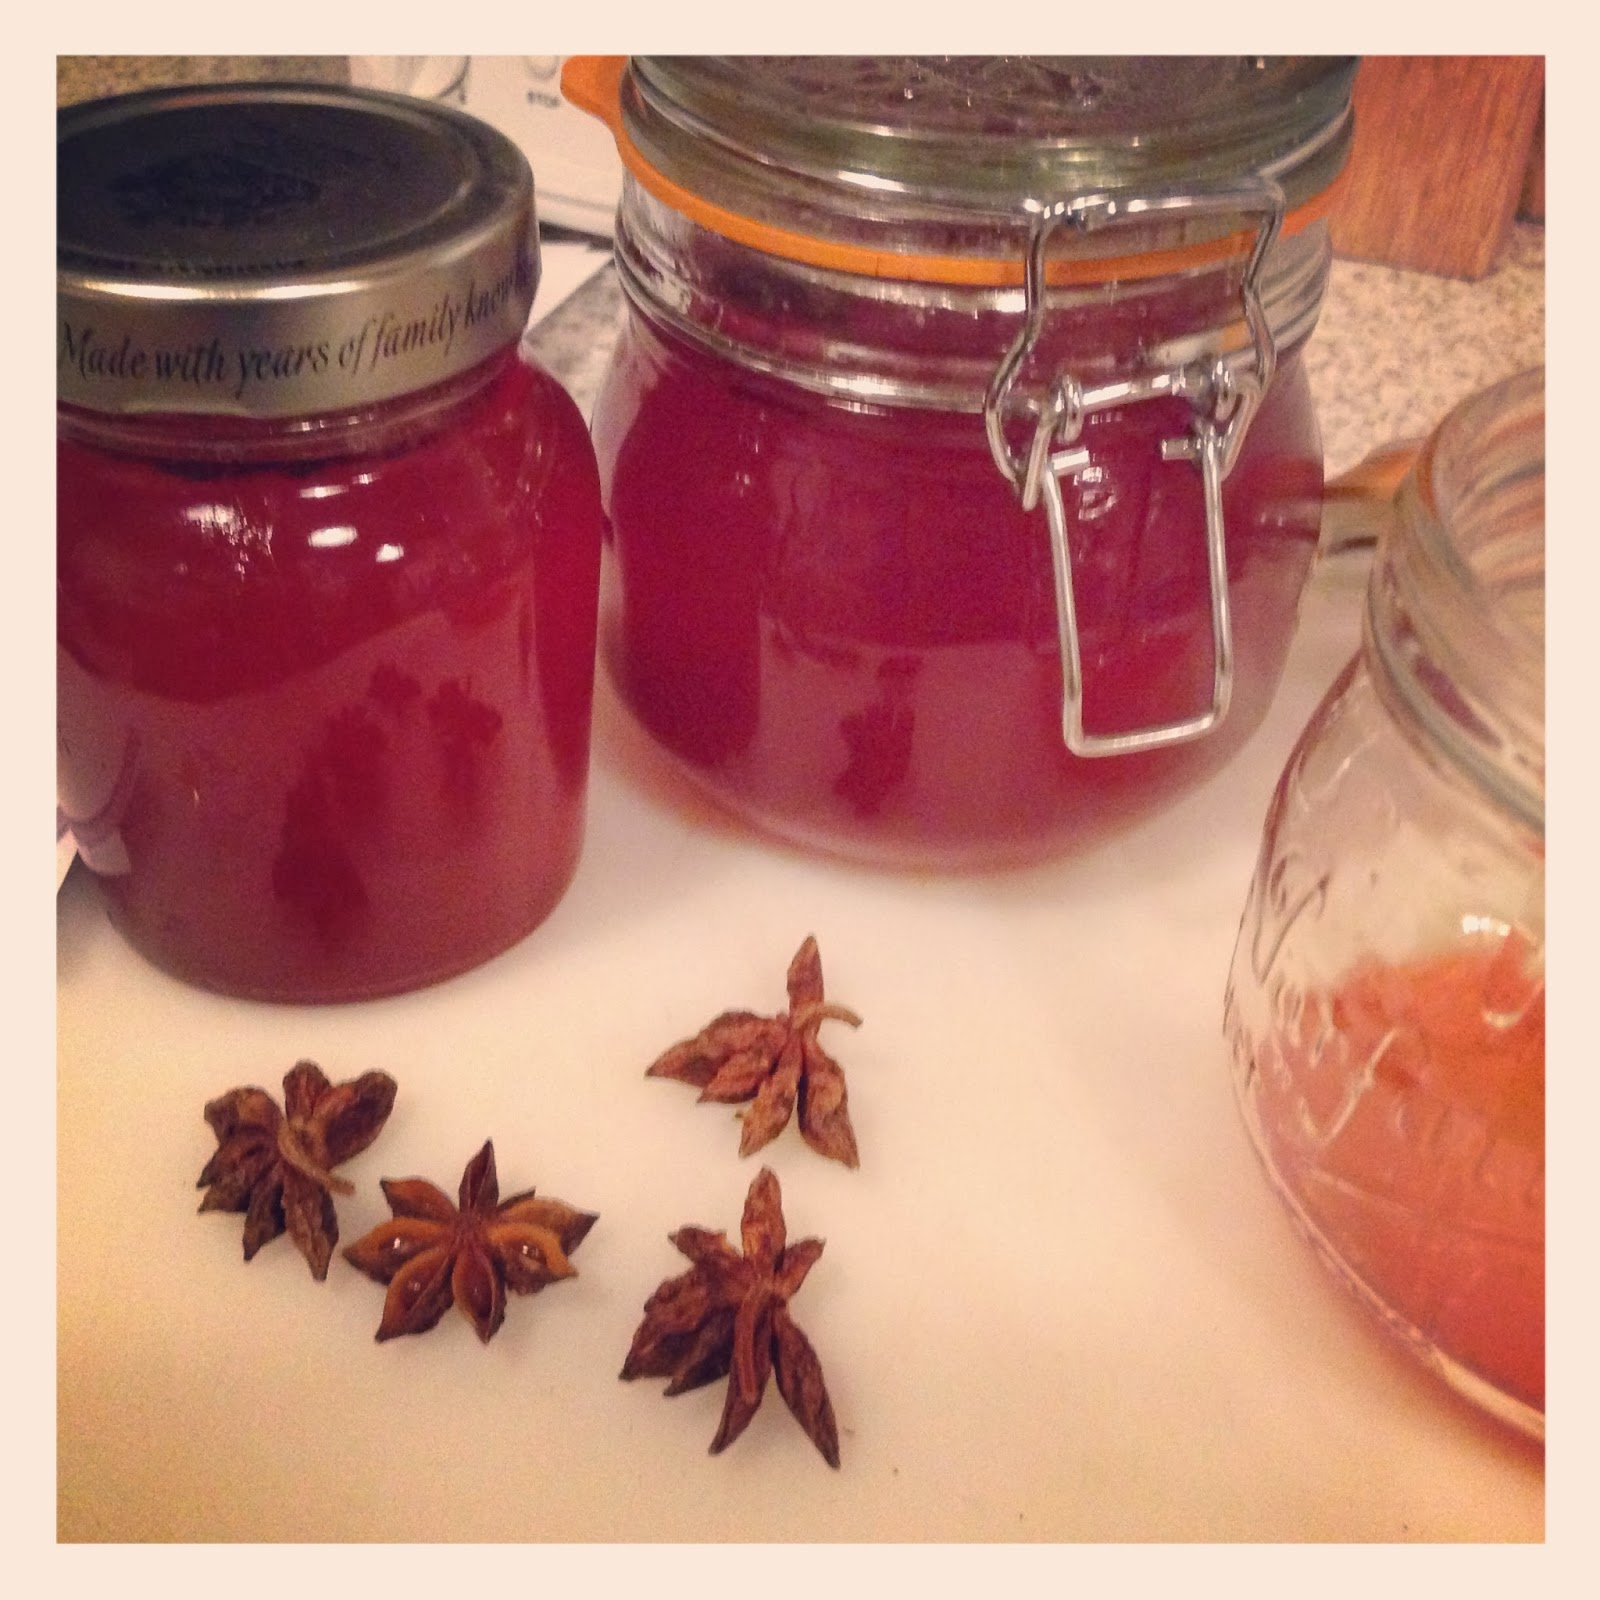 ve now made both membrillo and quince jelly and